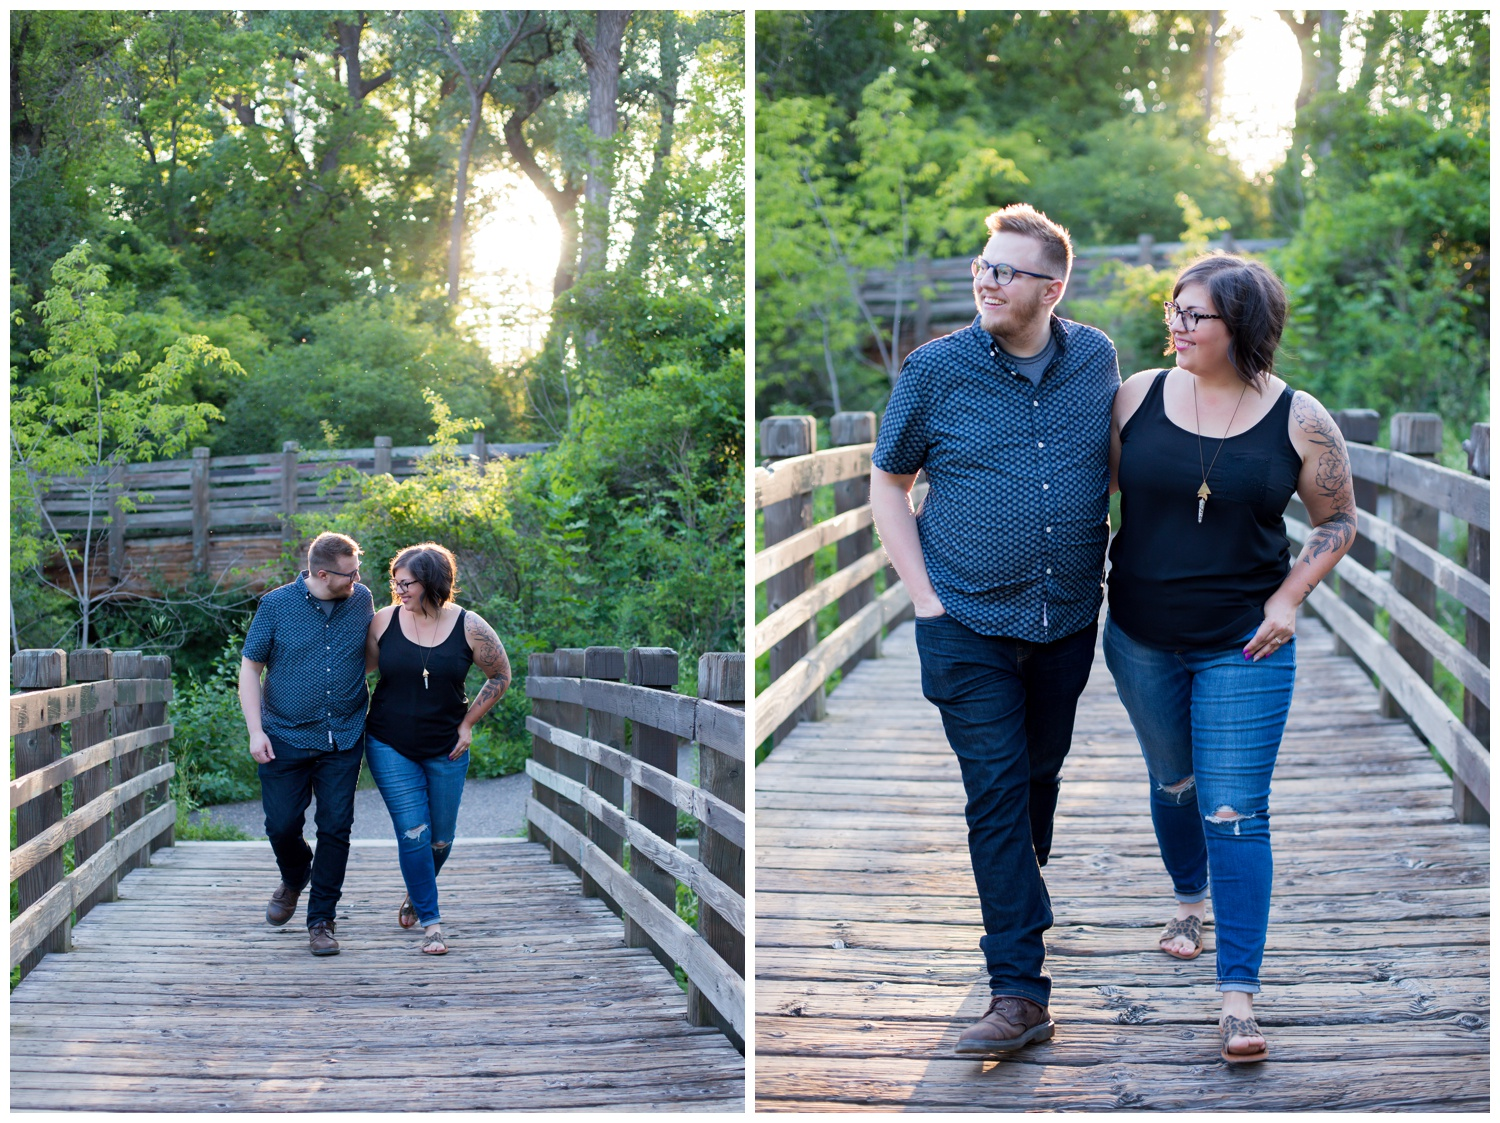 Kate-Alison-Photography-Caitlin-Tom-St-Paul-Couples-Session-44.jpg